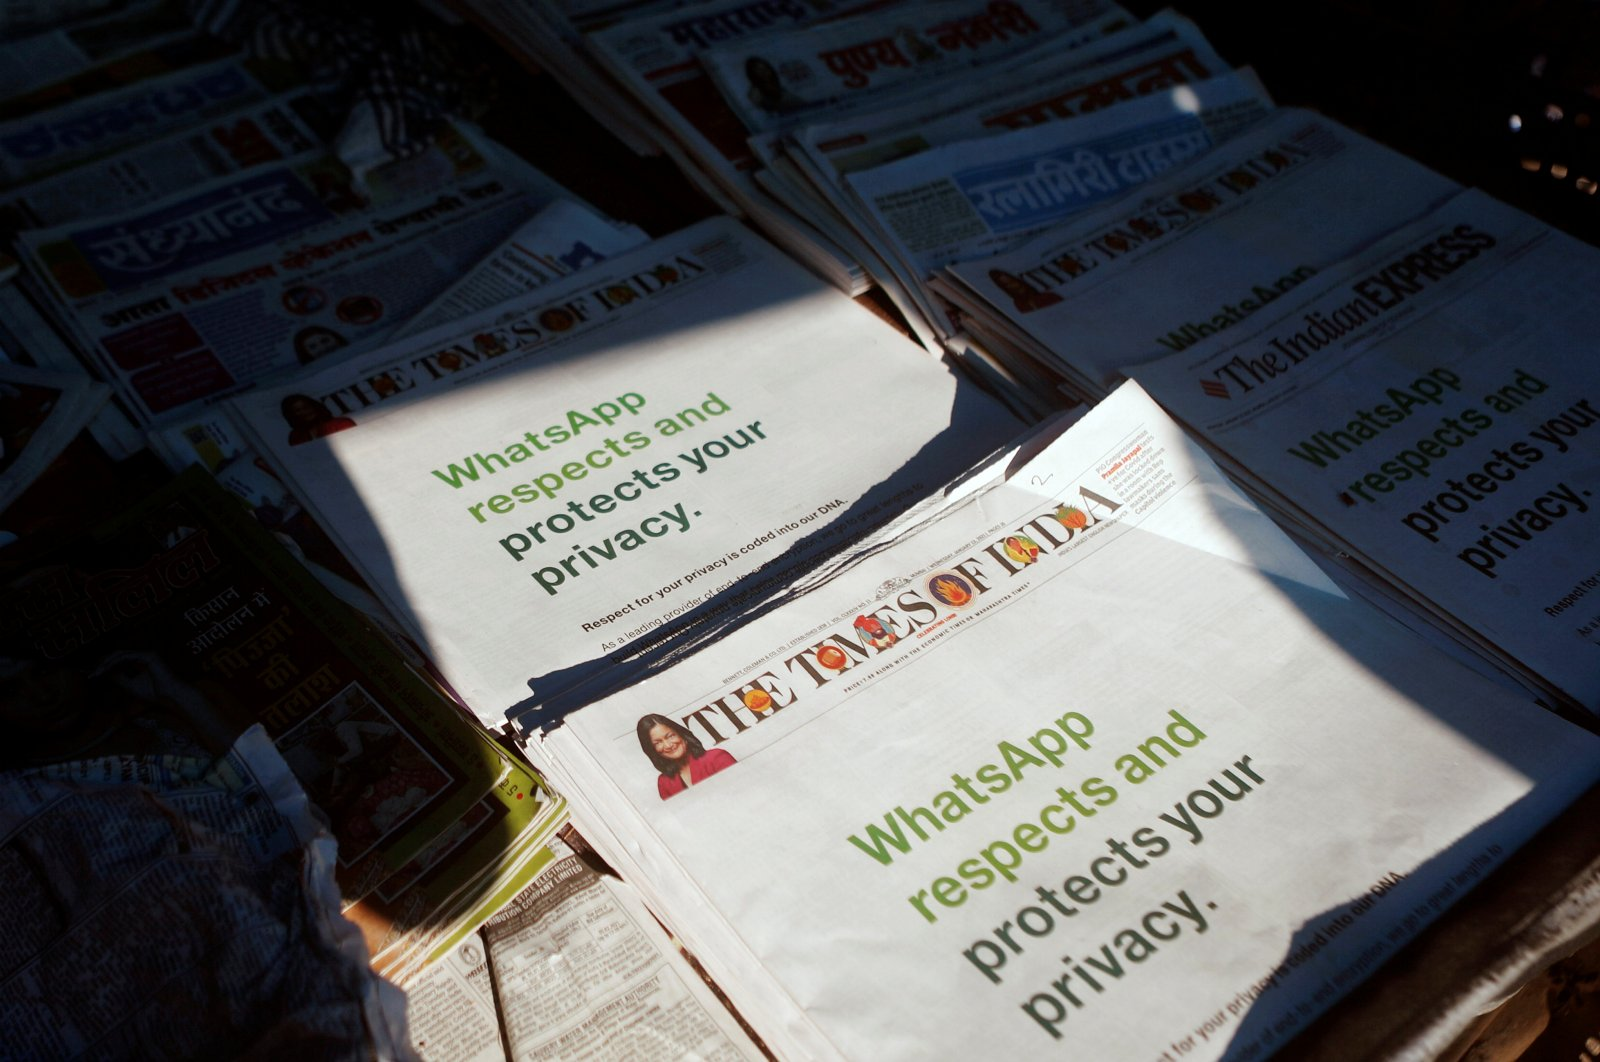 A WhatsApp advertisement is seen on the front pages of newspapers at a stall in Mumbai, India, Jan. 13, 2021. (Reuters Photo)